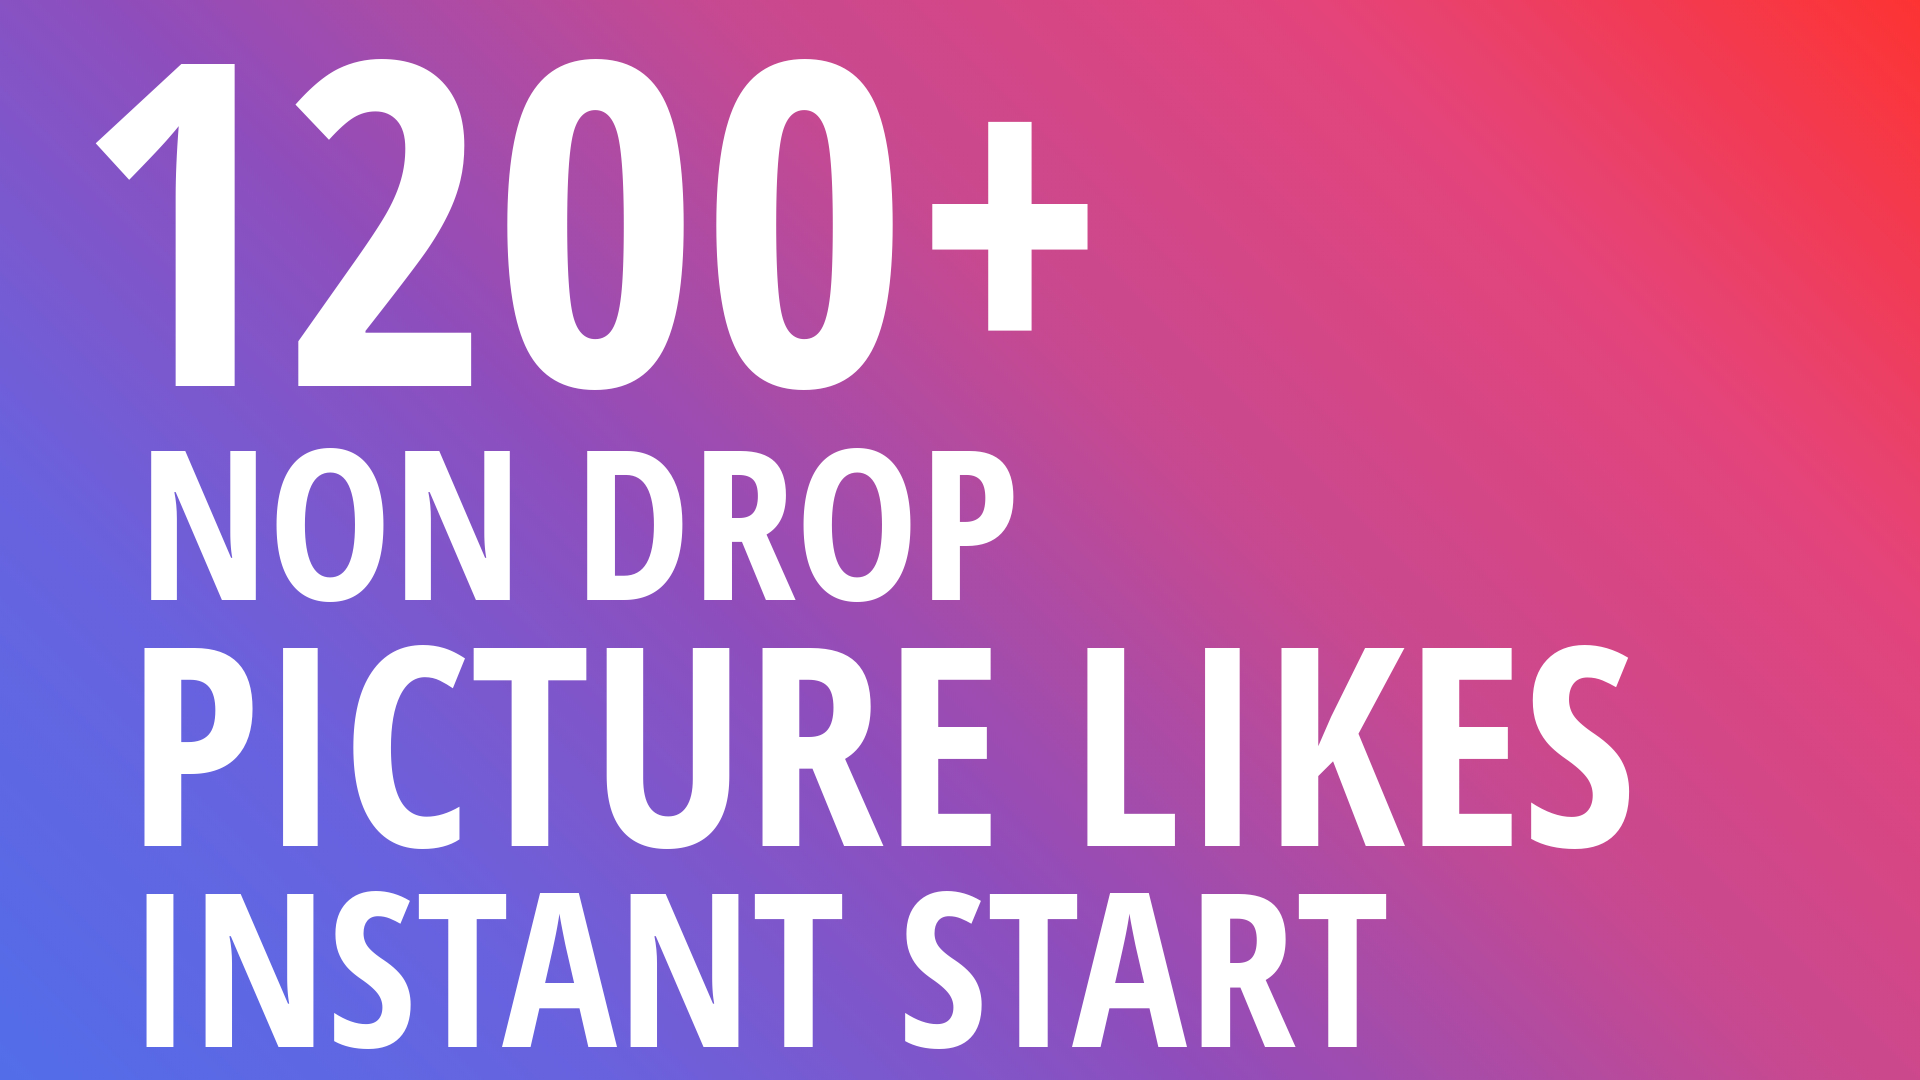 Instant 1200+ Picture OR Video HQ Promotion with Organic Method